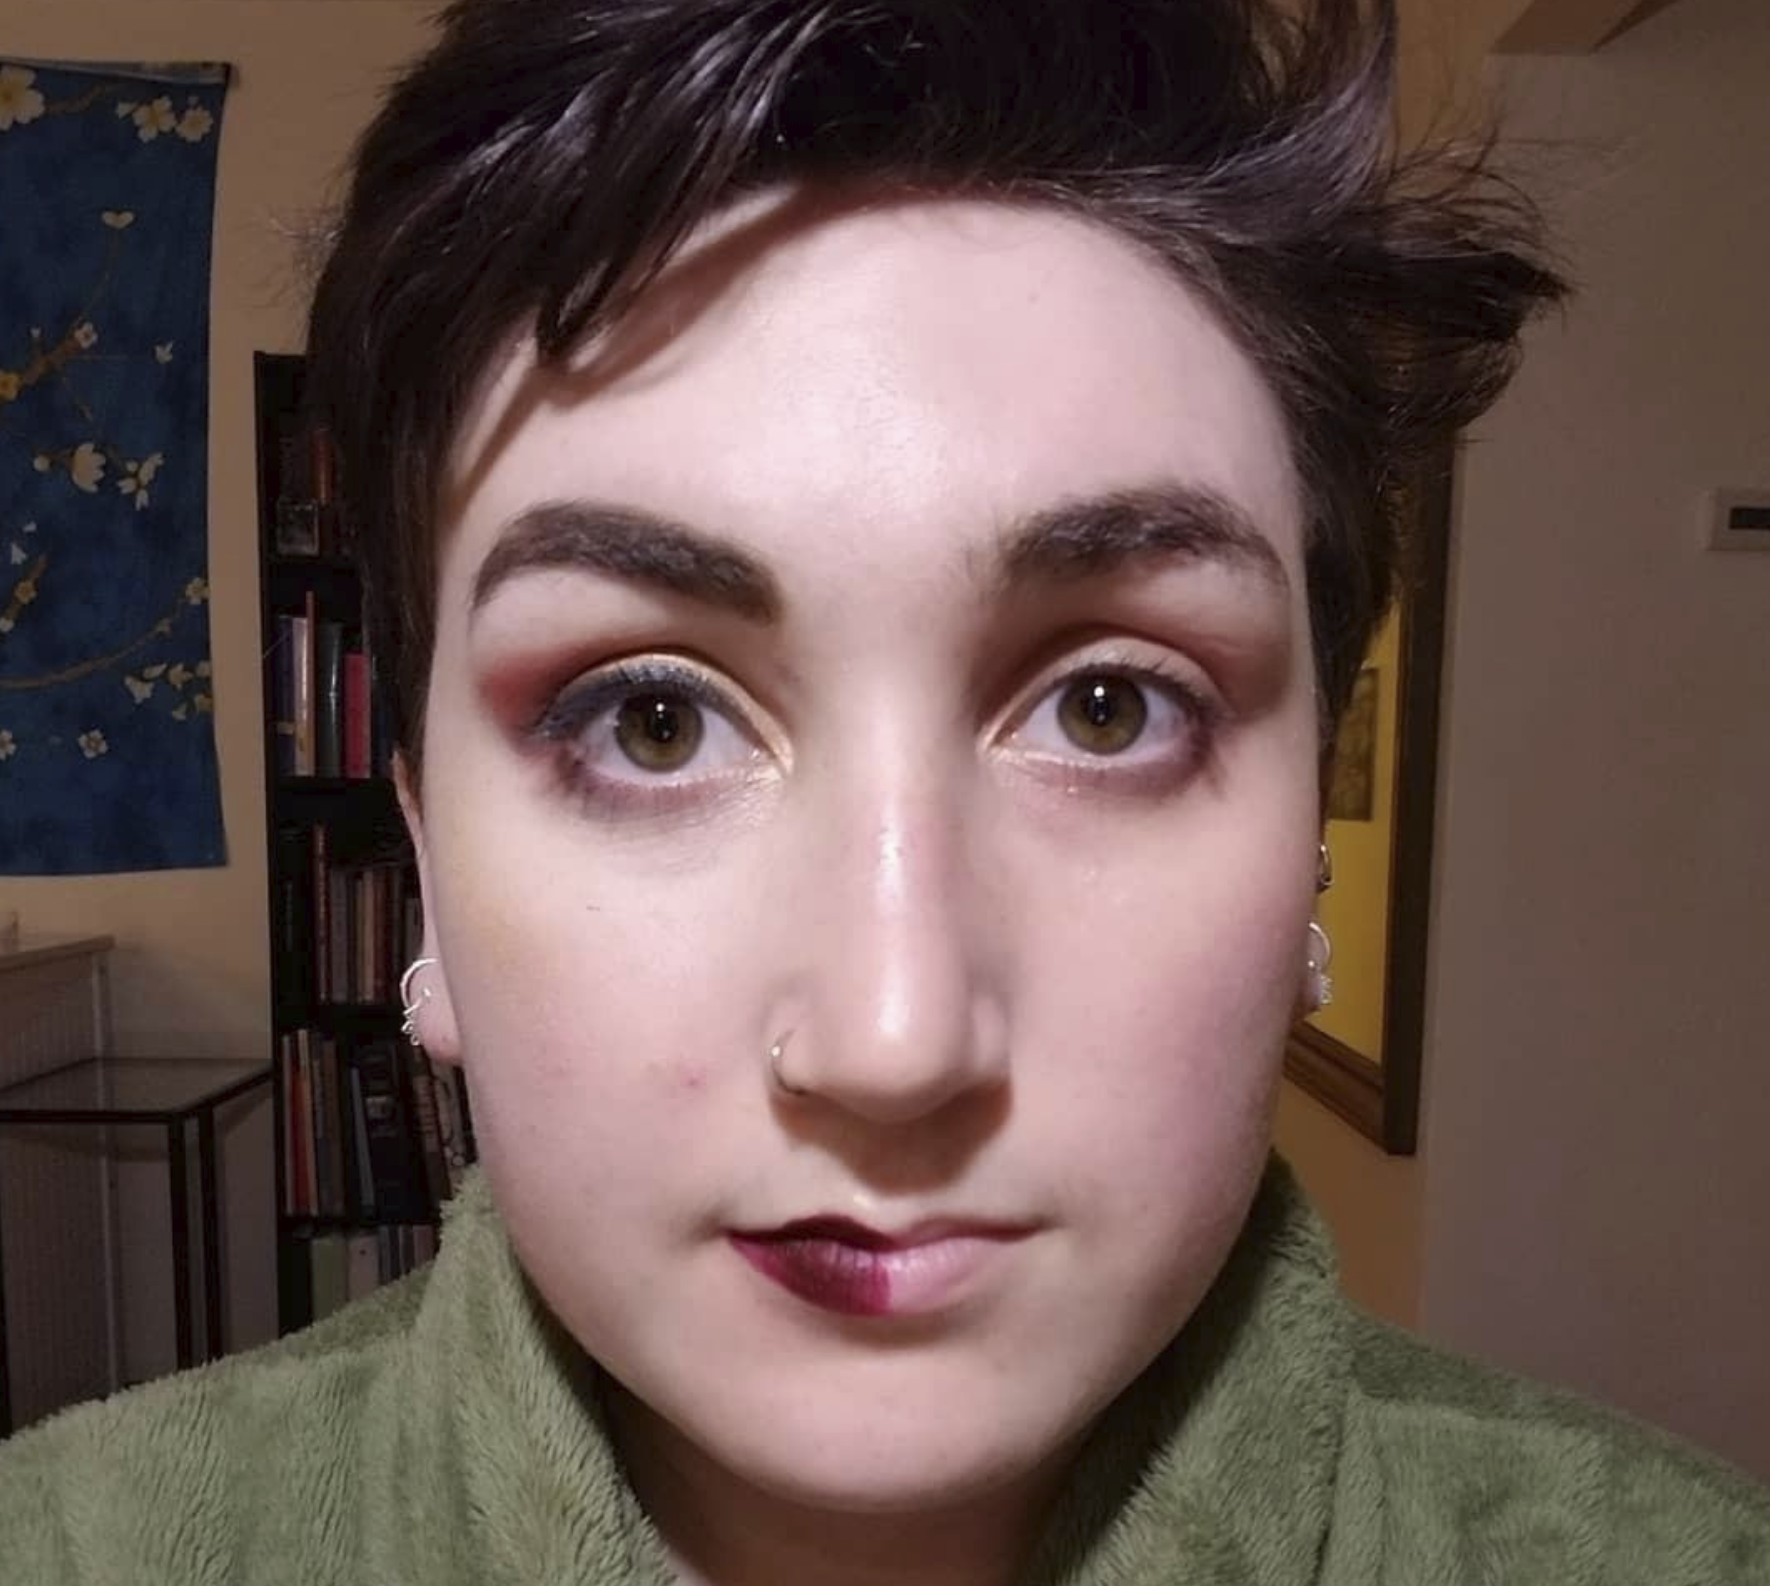 reviewer with half their face full of makeup and the other half with no makeup after it's been taken off by the cloths